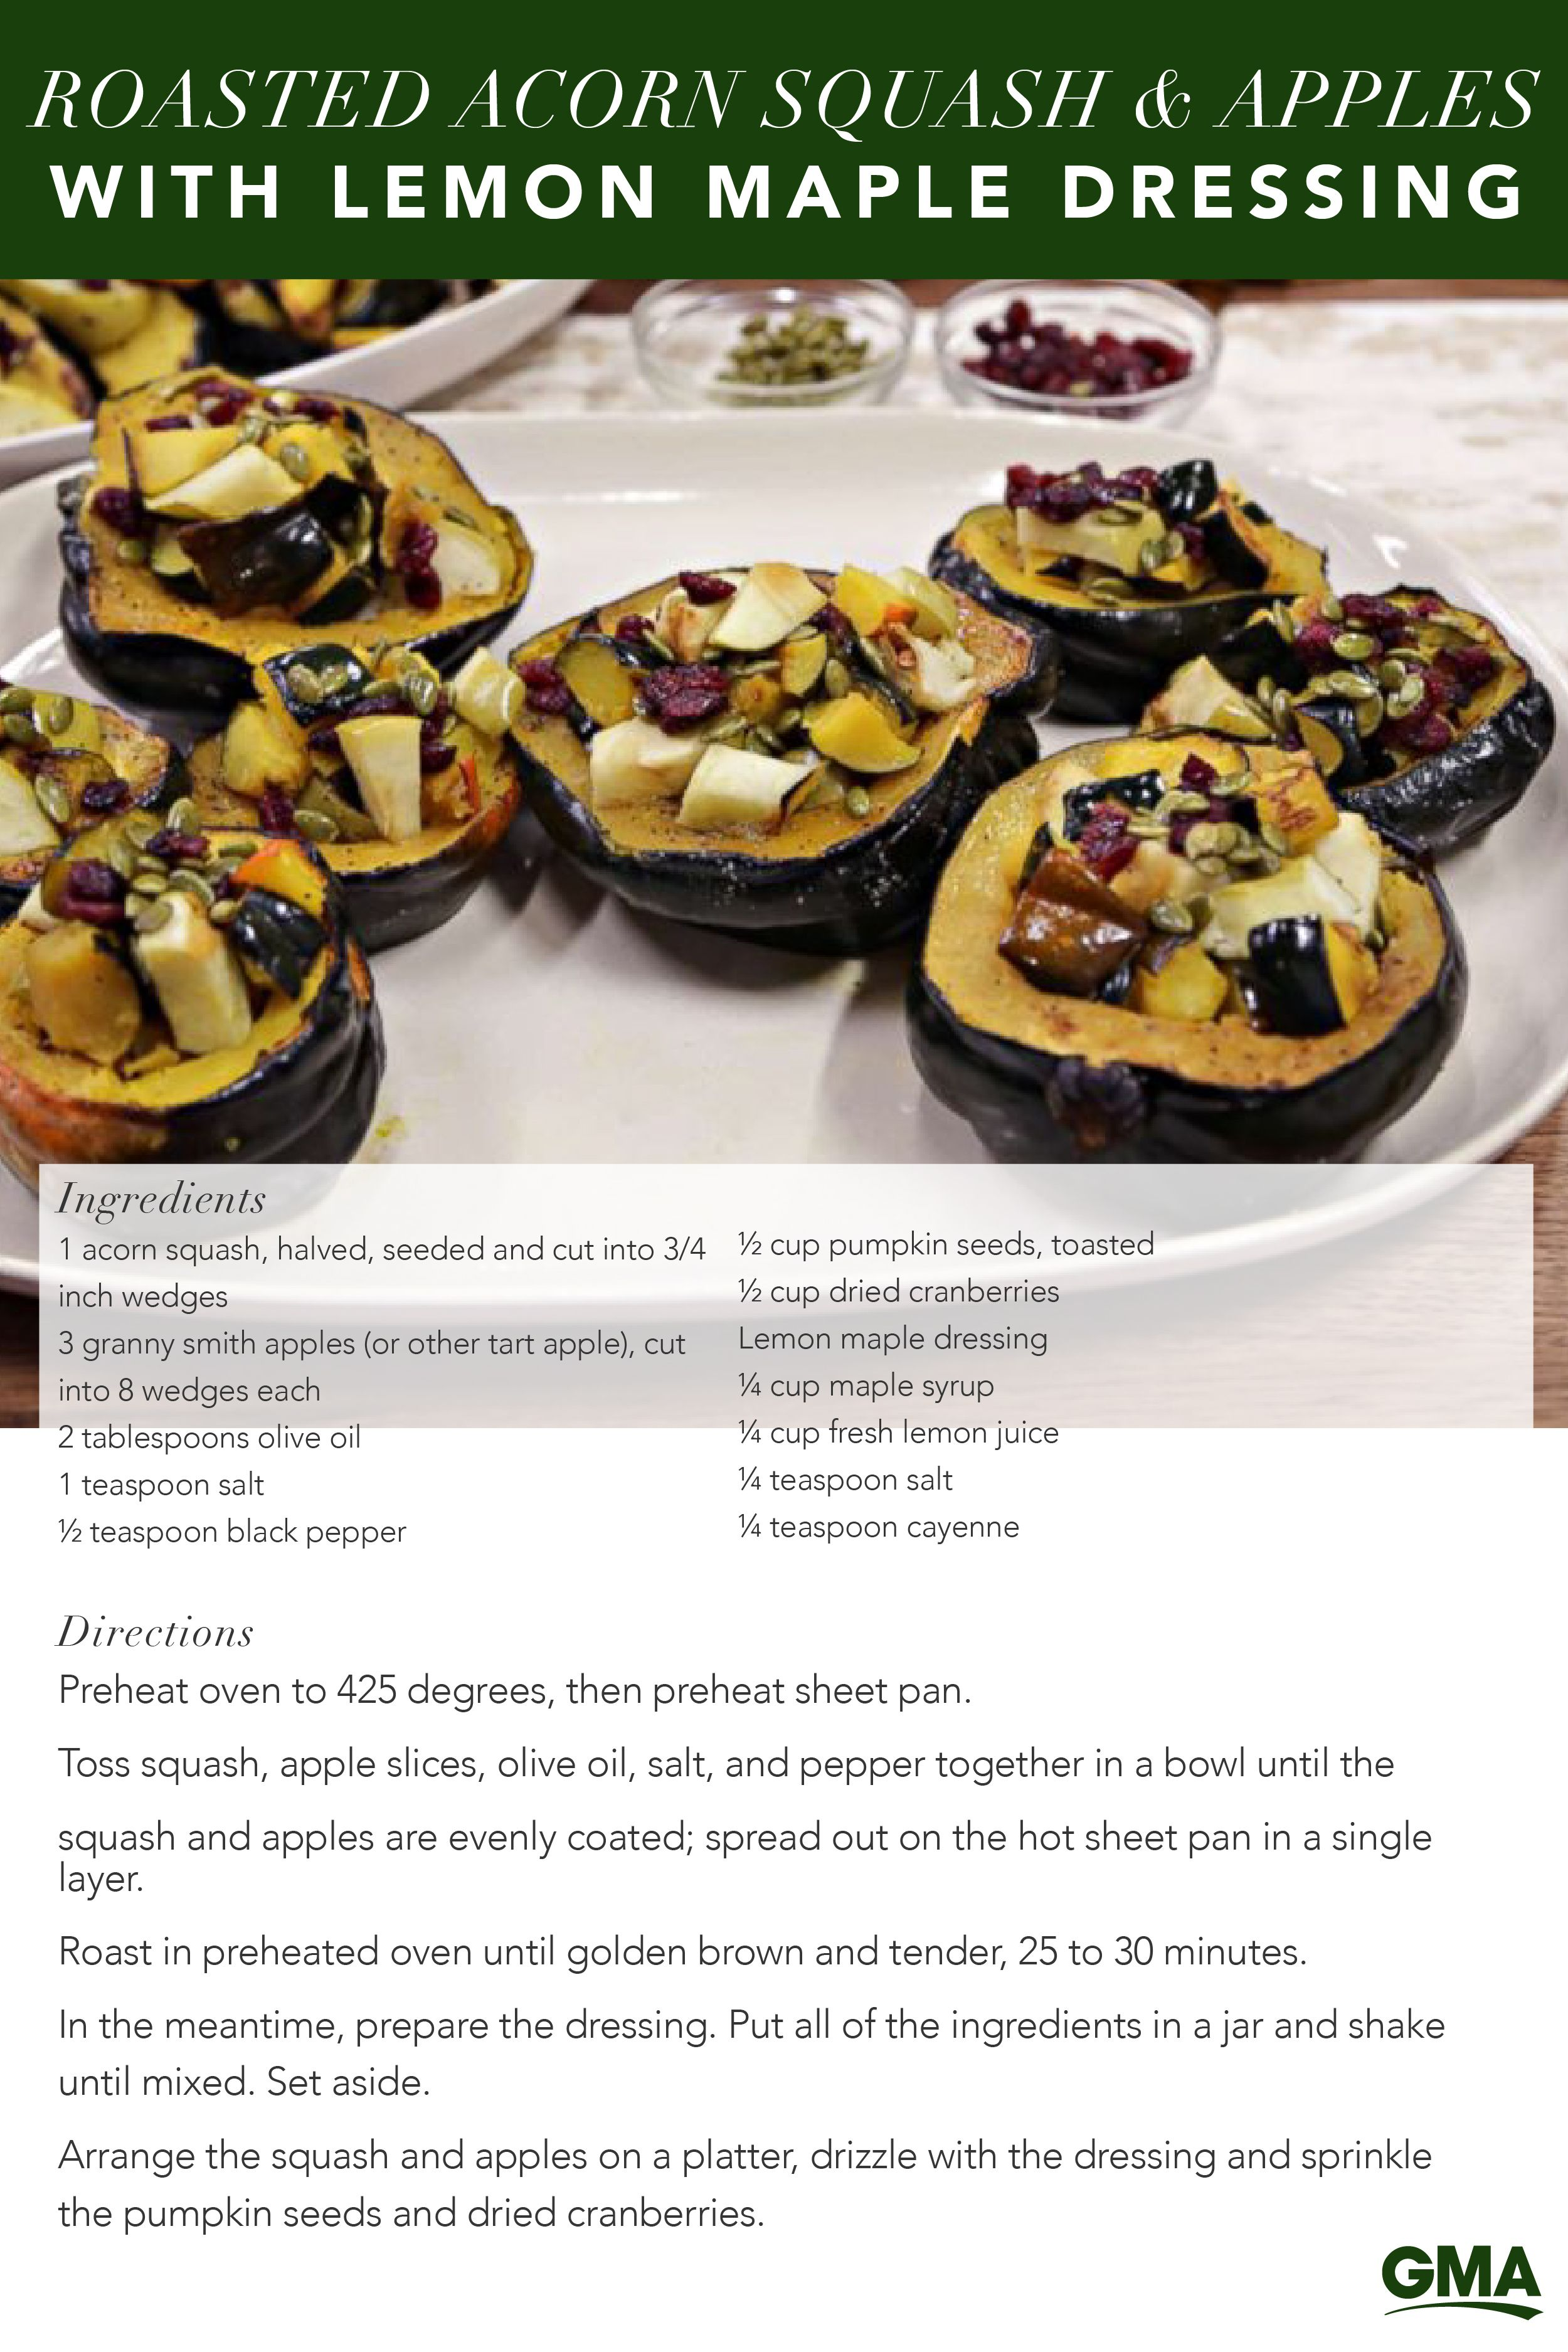 Carla Hall Shares Her Favorite Squash Recipes With Images